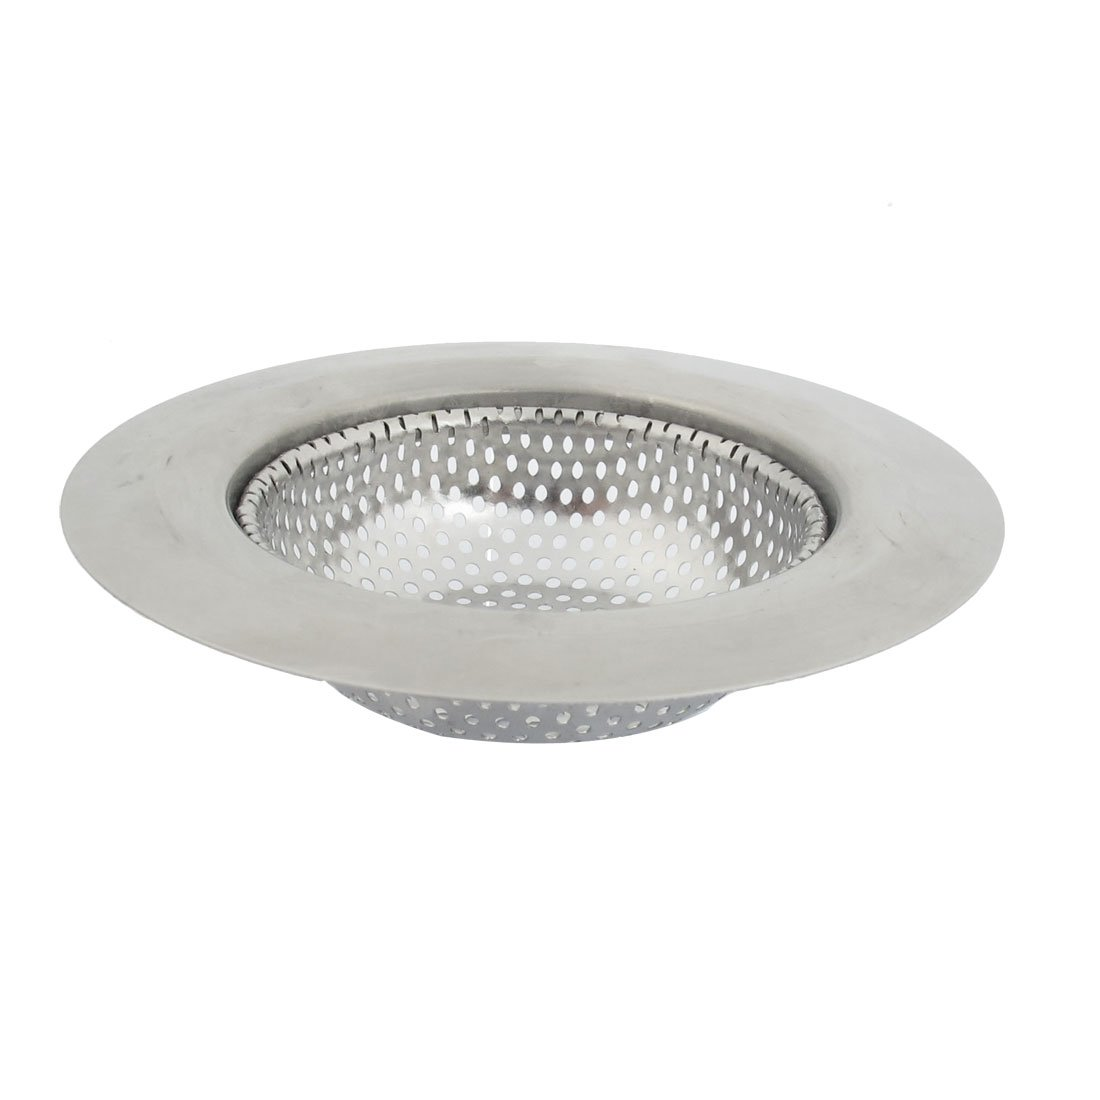 BIFI- Perforated Mesh Design Floor Sink Drain Strainer 4.3 Inch Top Dia